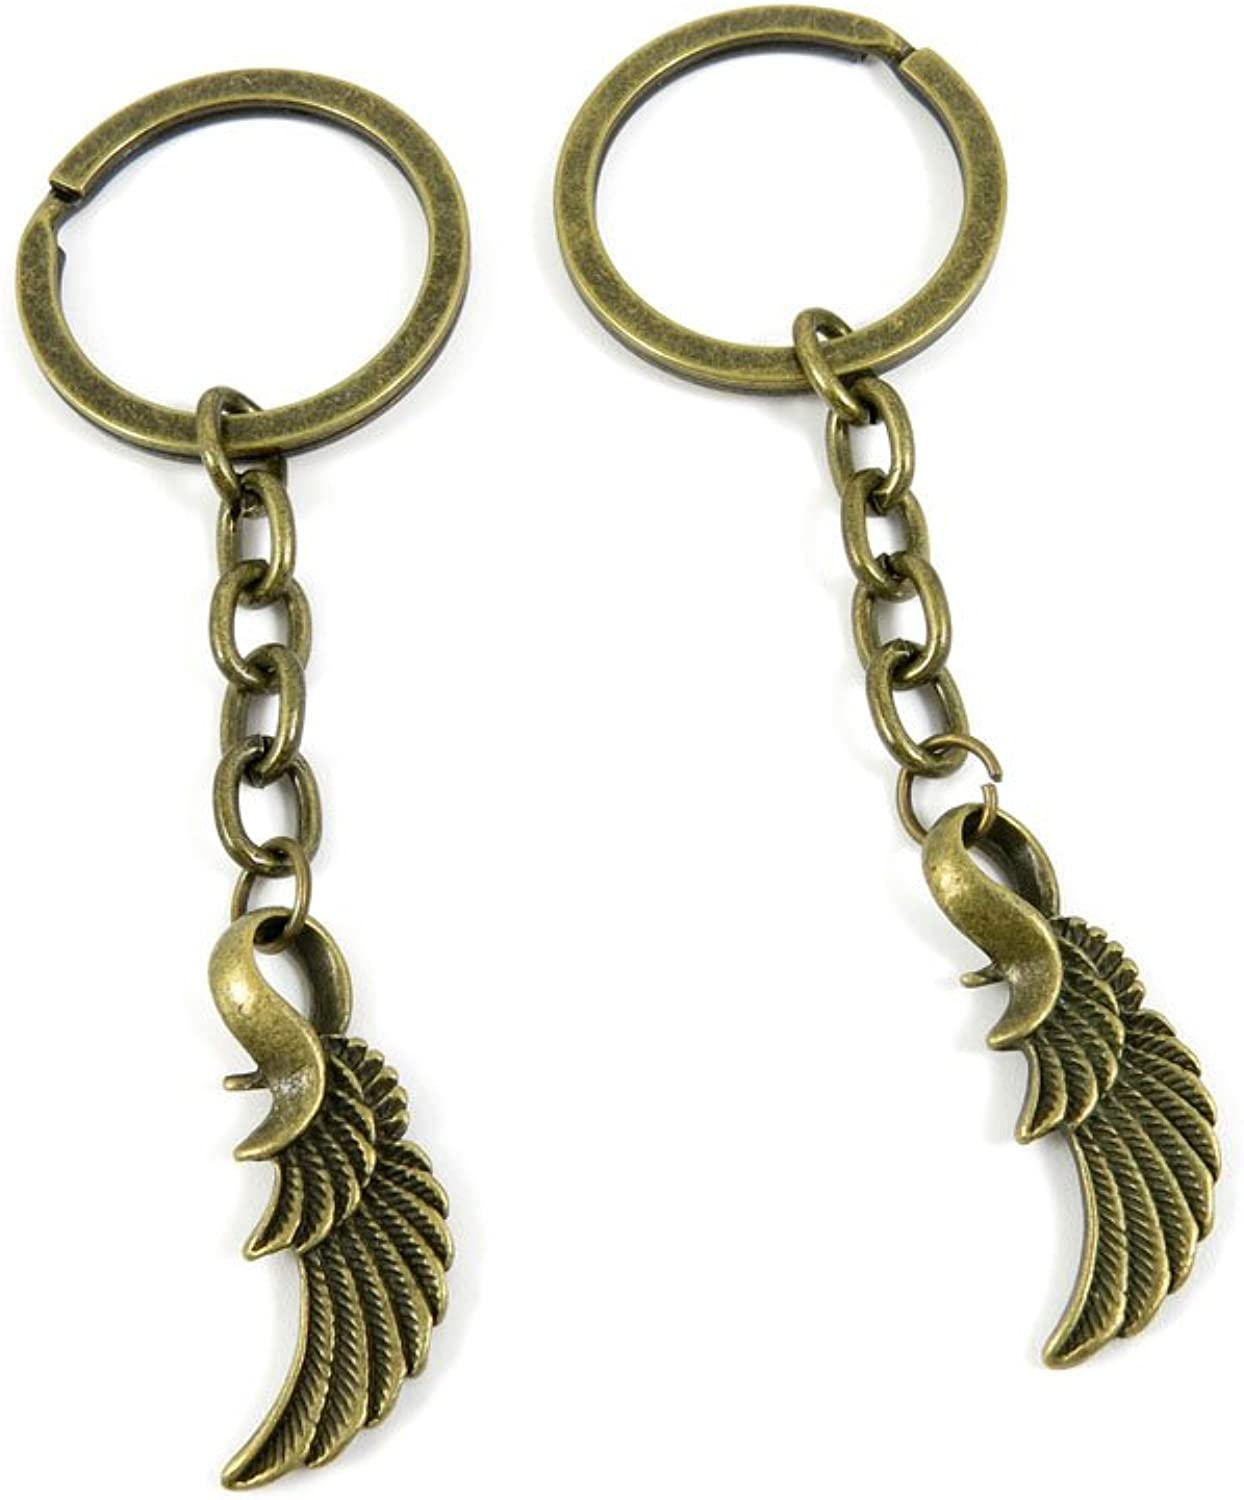 180 Pieces Fashion Jewelry Keyring Keychain Door Car Key Tag Ring Chain Supplier Supply Wholesale Bulk Lots R2PM9 Angel Wings